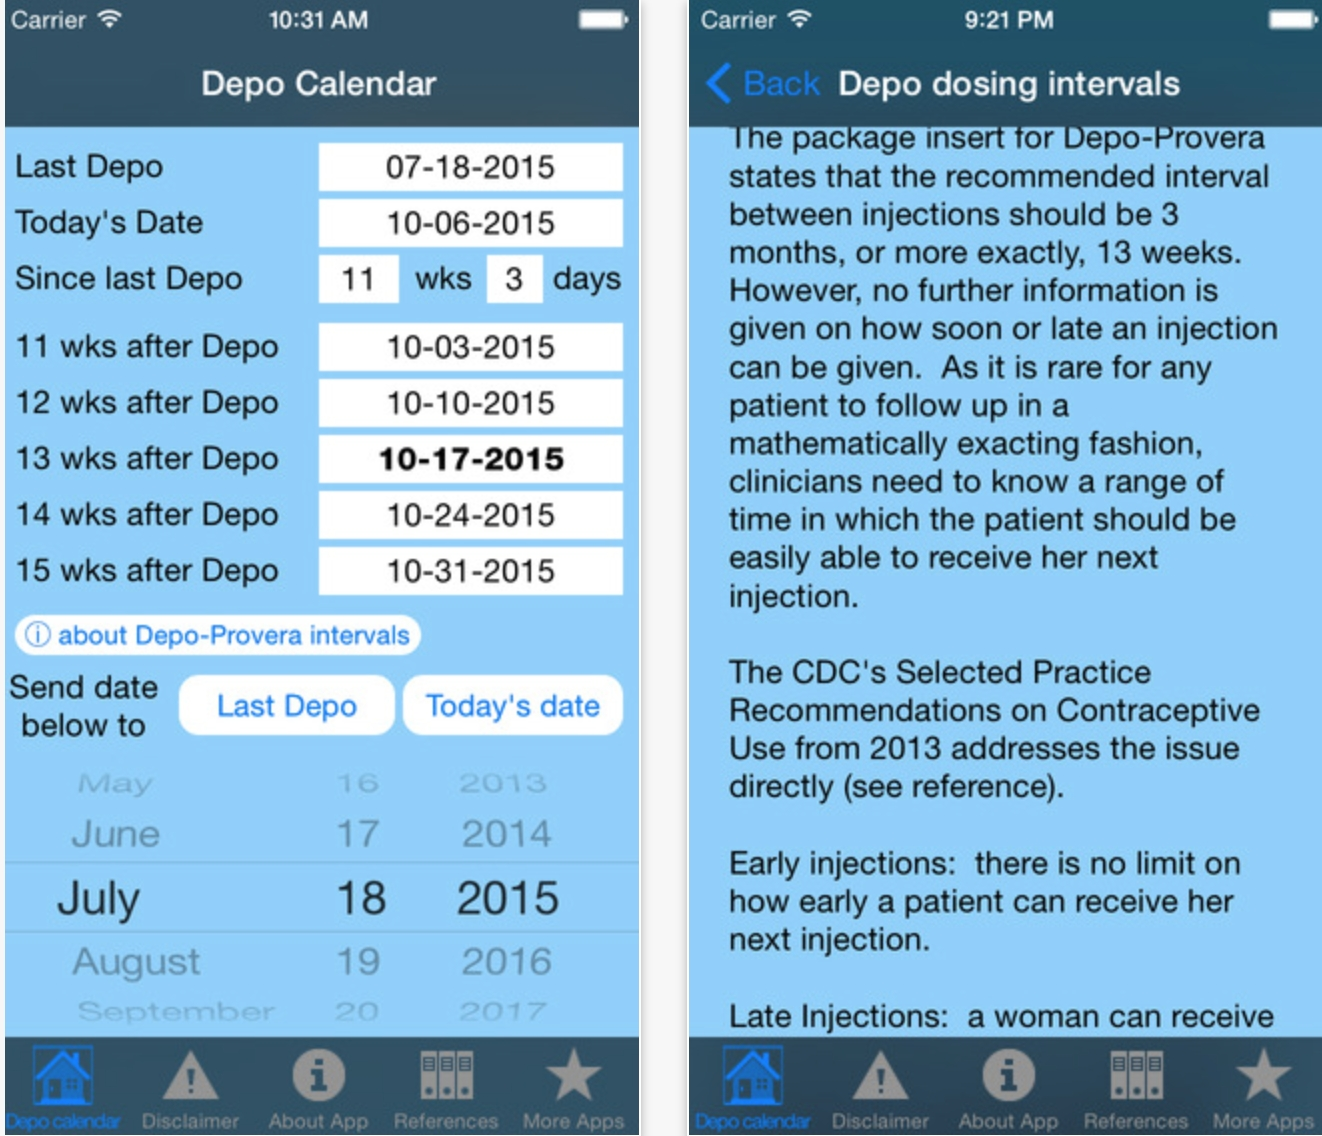 Depo Calendar App Could Significantly Improve Contraception  Depo Provera Calculator 2021